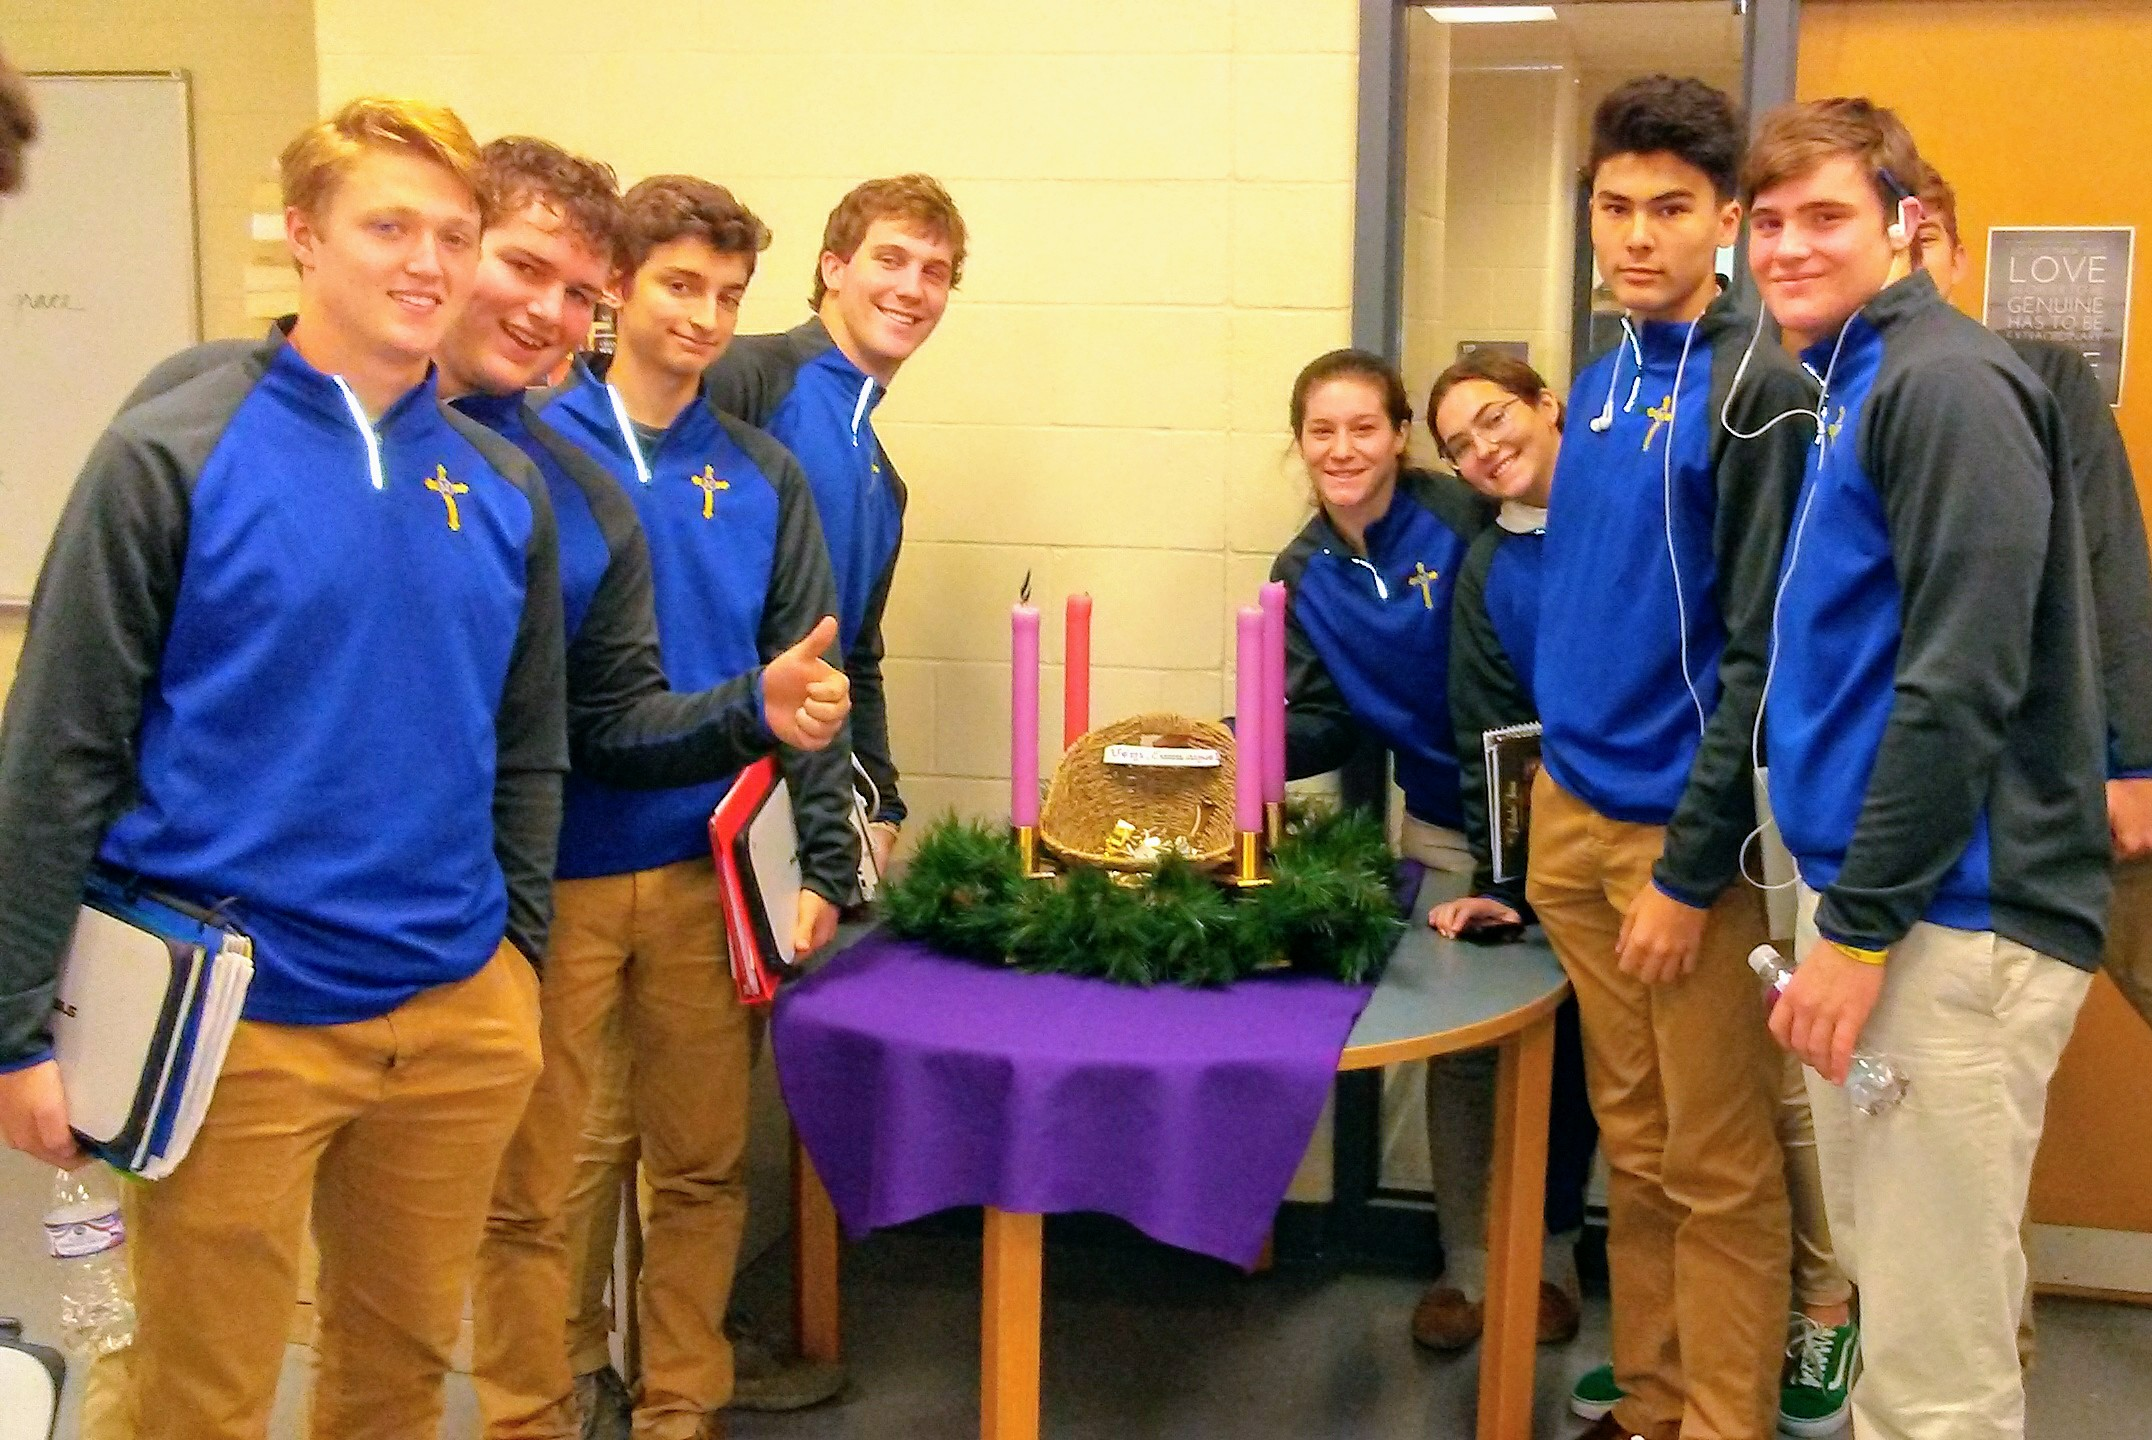 Some of our Senior students gather around the Advent wreath. They have the opportunity to place their Prayer, Fasting & Almsgiving resolutions in the manger.